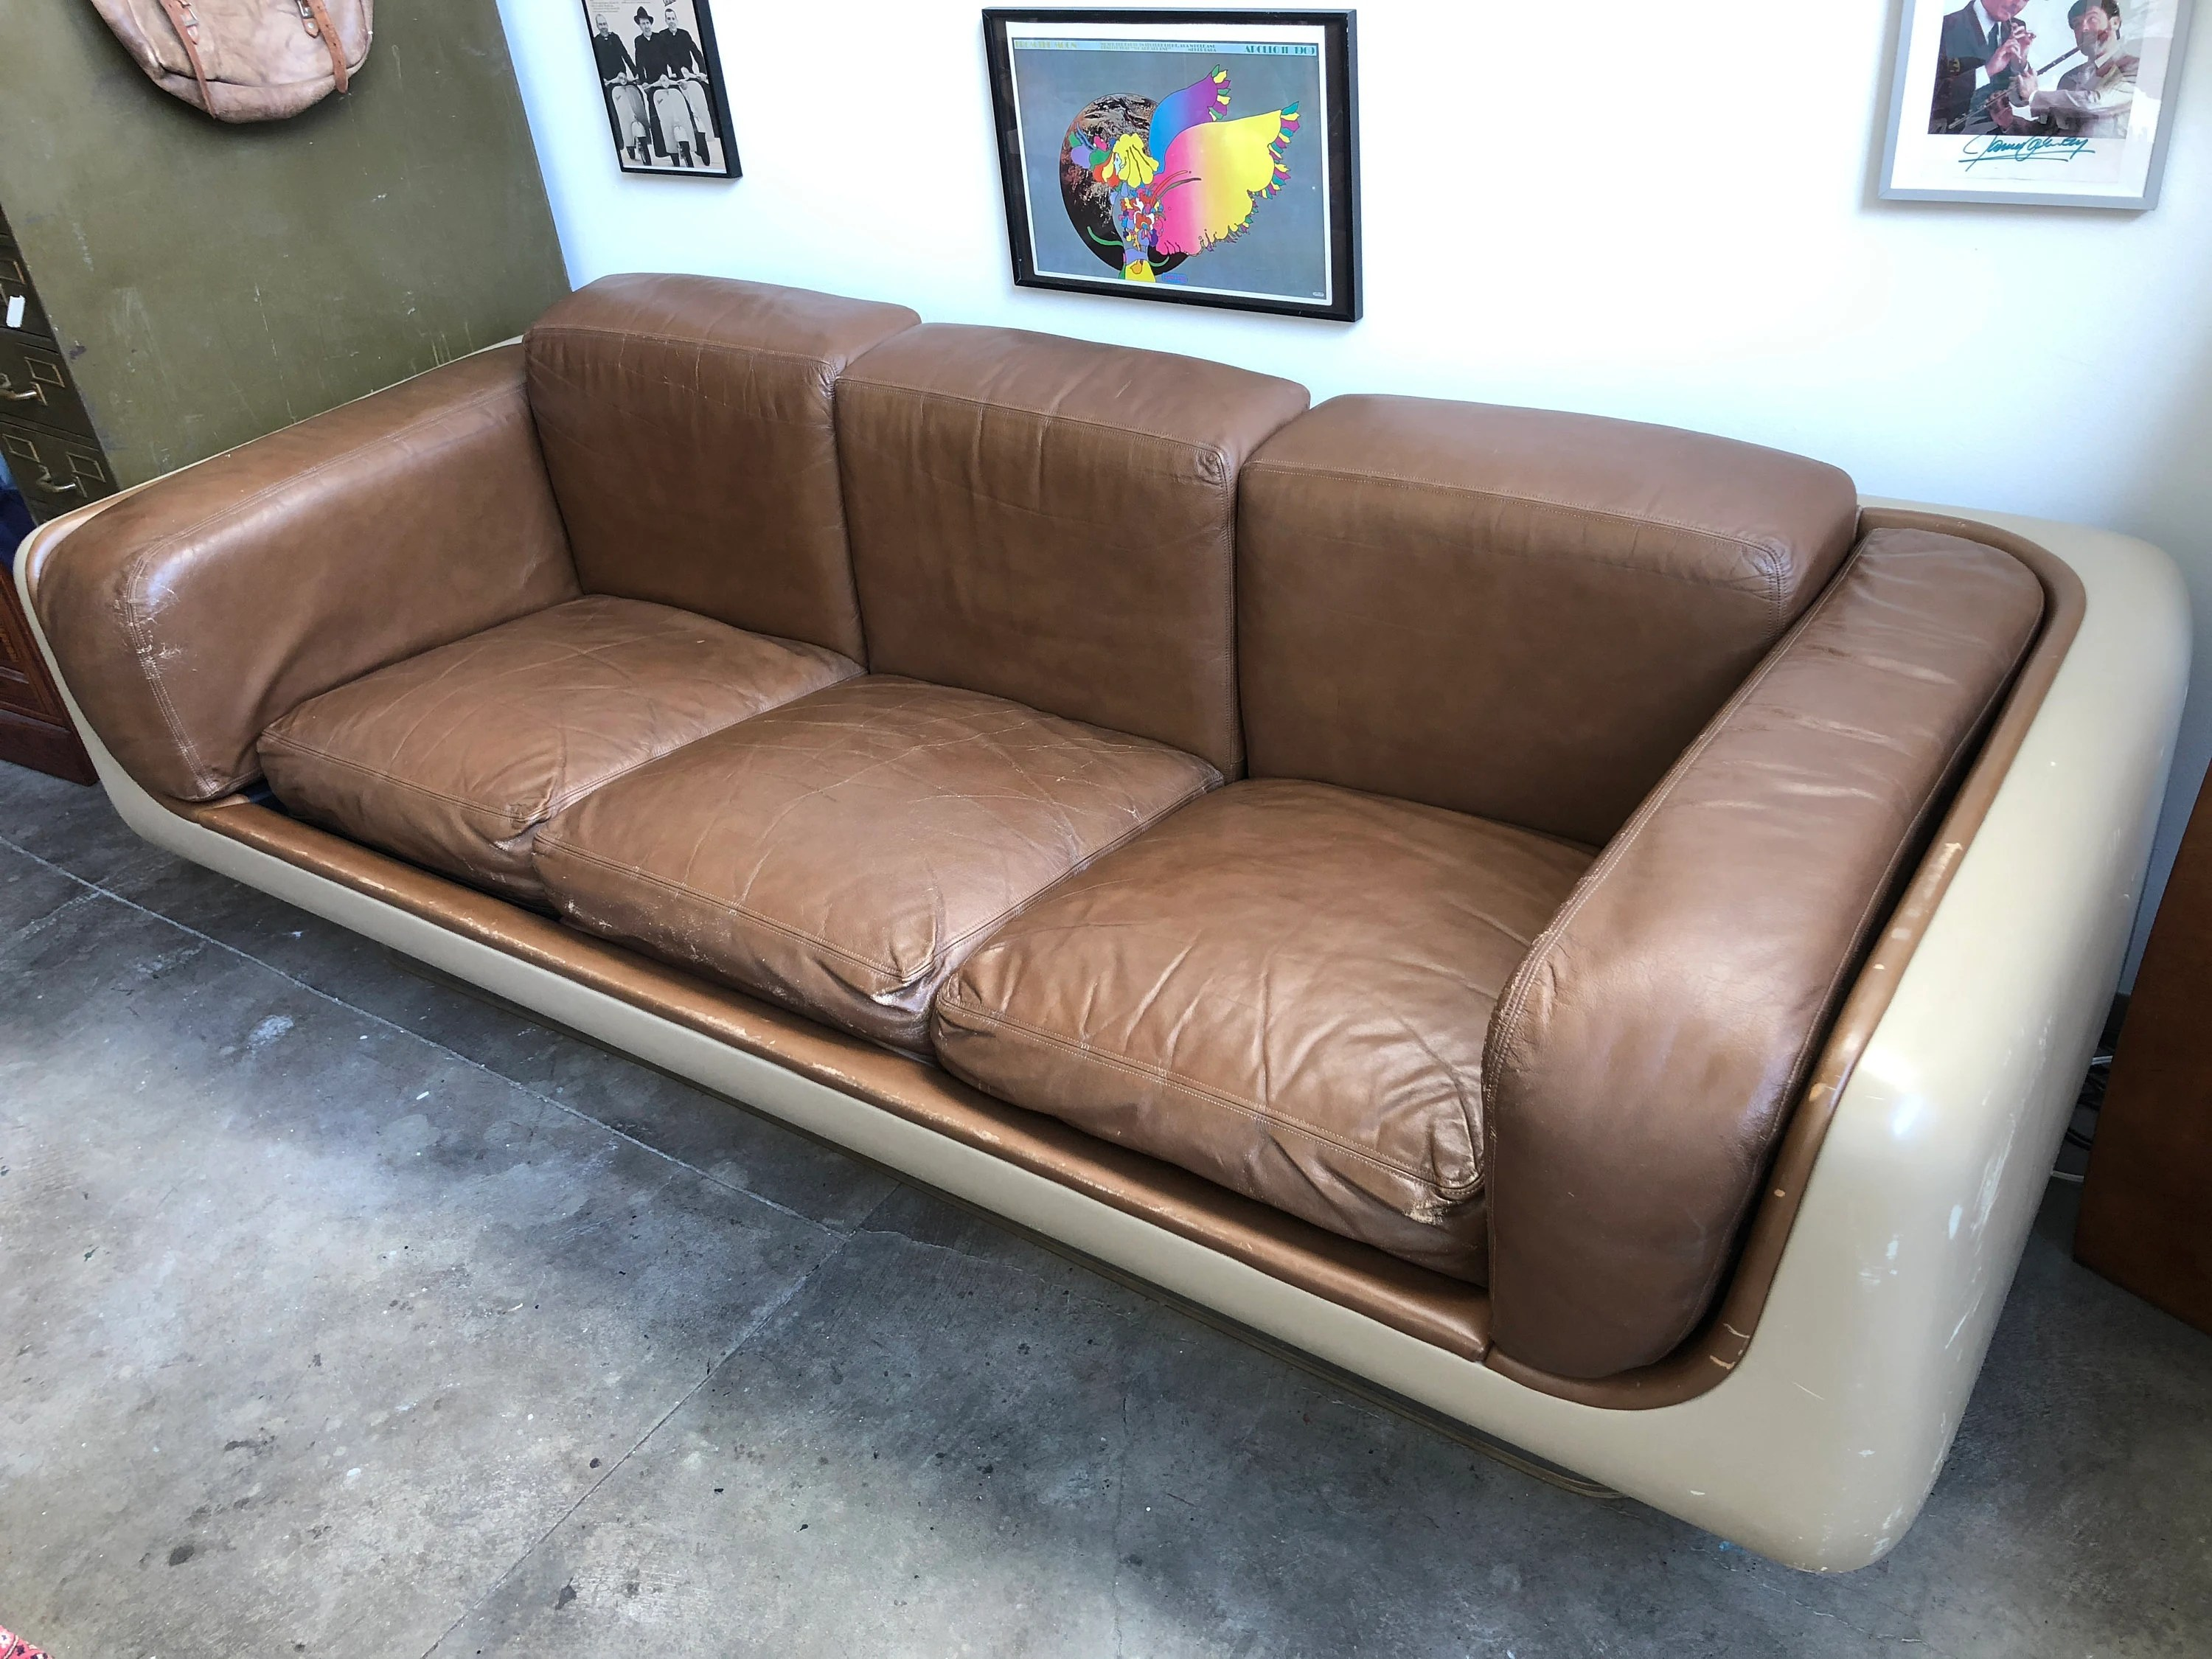 steelcase sofa platner baby support seat etsy original mod 70s warren for couch mcm mid century modern lucite leather molded plastic